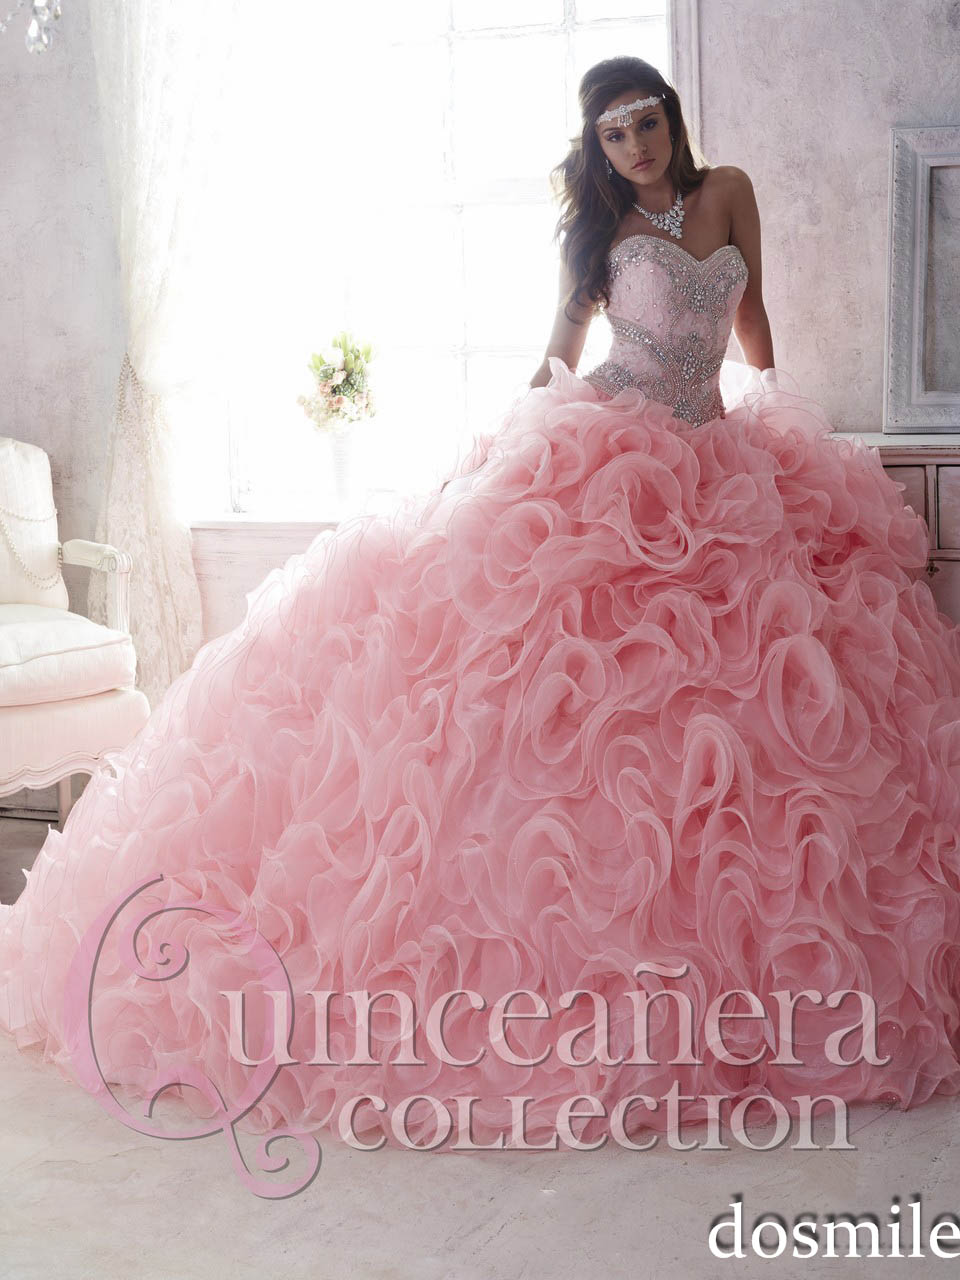 aeab02d356b3 Romantic light Pink Sweetheart Detachable Skirts Quinceanera Dresses  Ruffled Organza Beaded Ball Gown Lace up Party Dress 2016